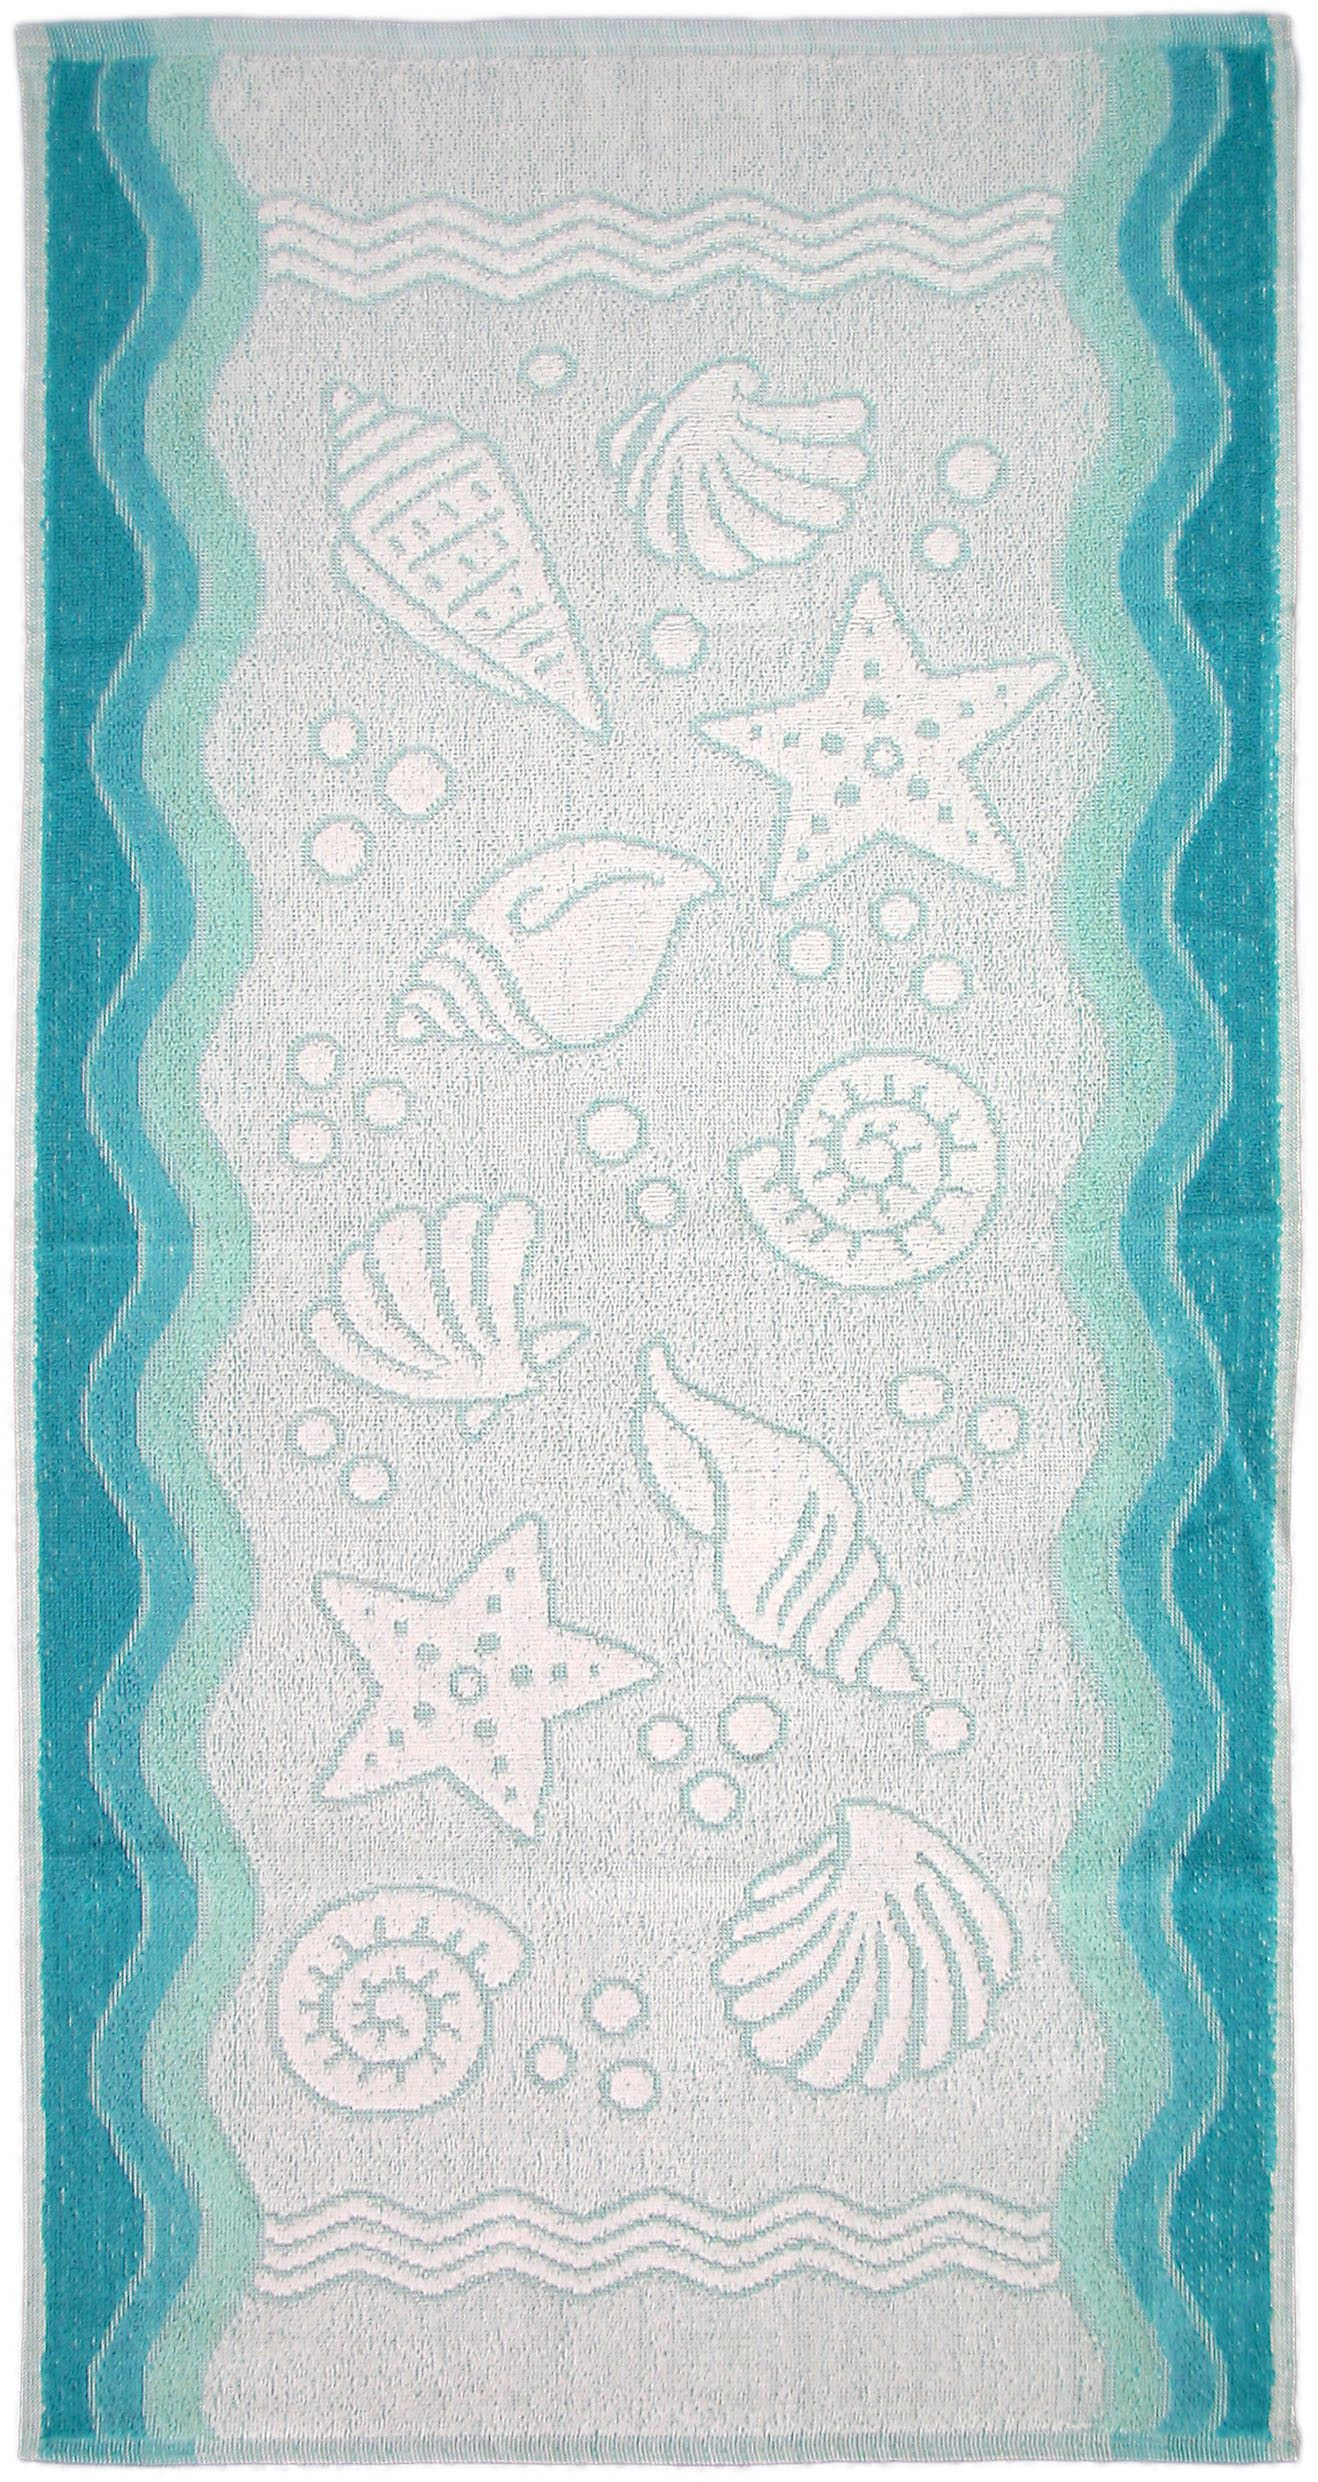 Ręcznik Flora Ocean - Turkusowy - 40x60 cm - Everday Collection - Greno   turkus